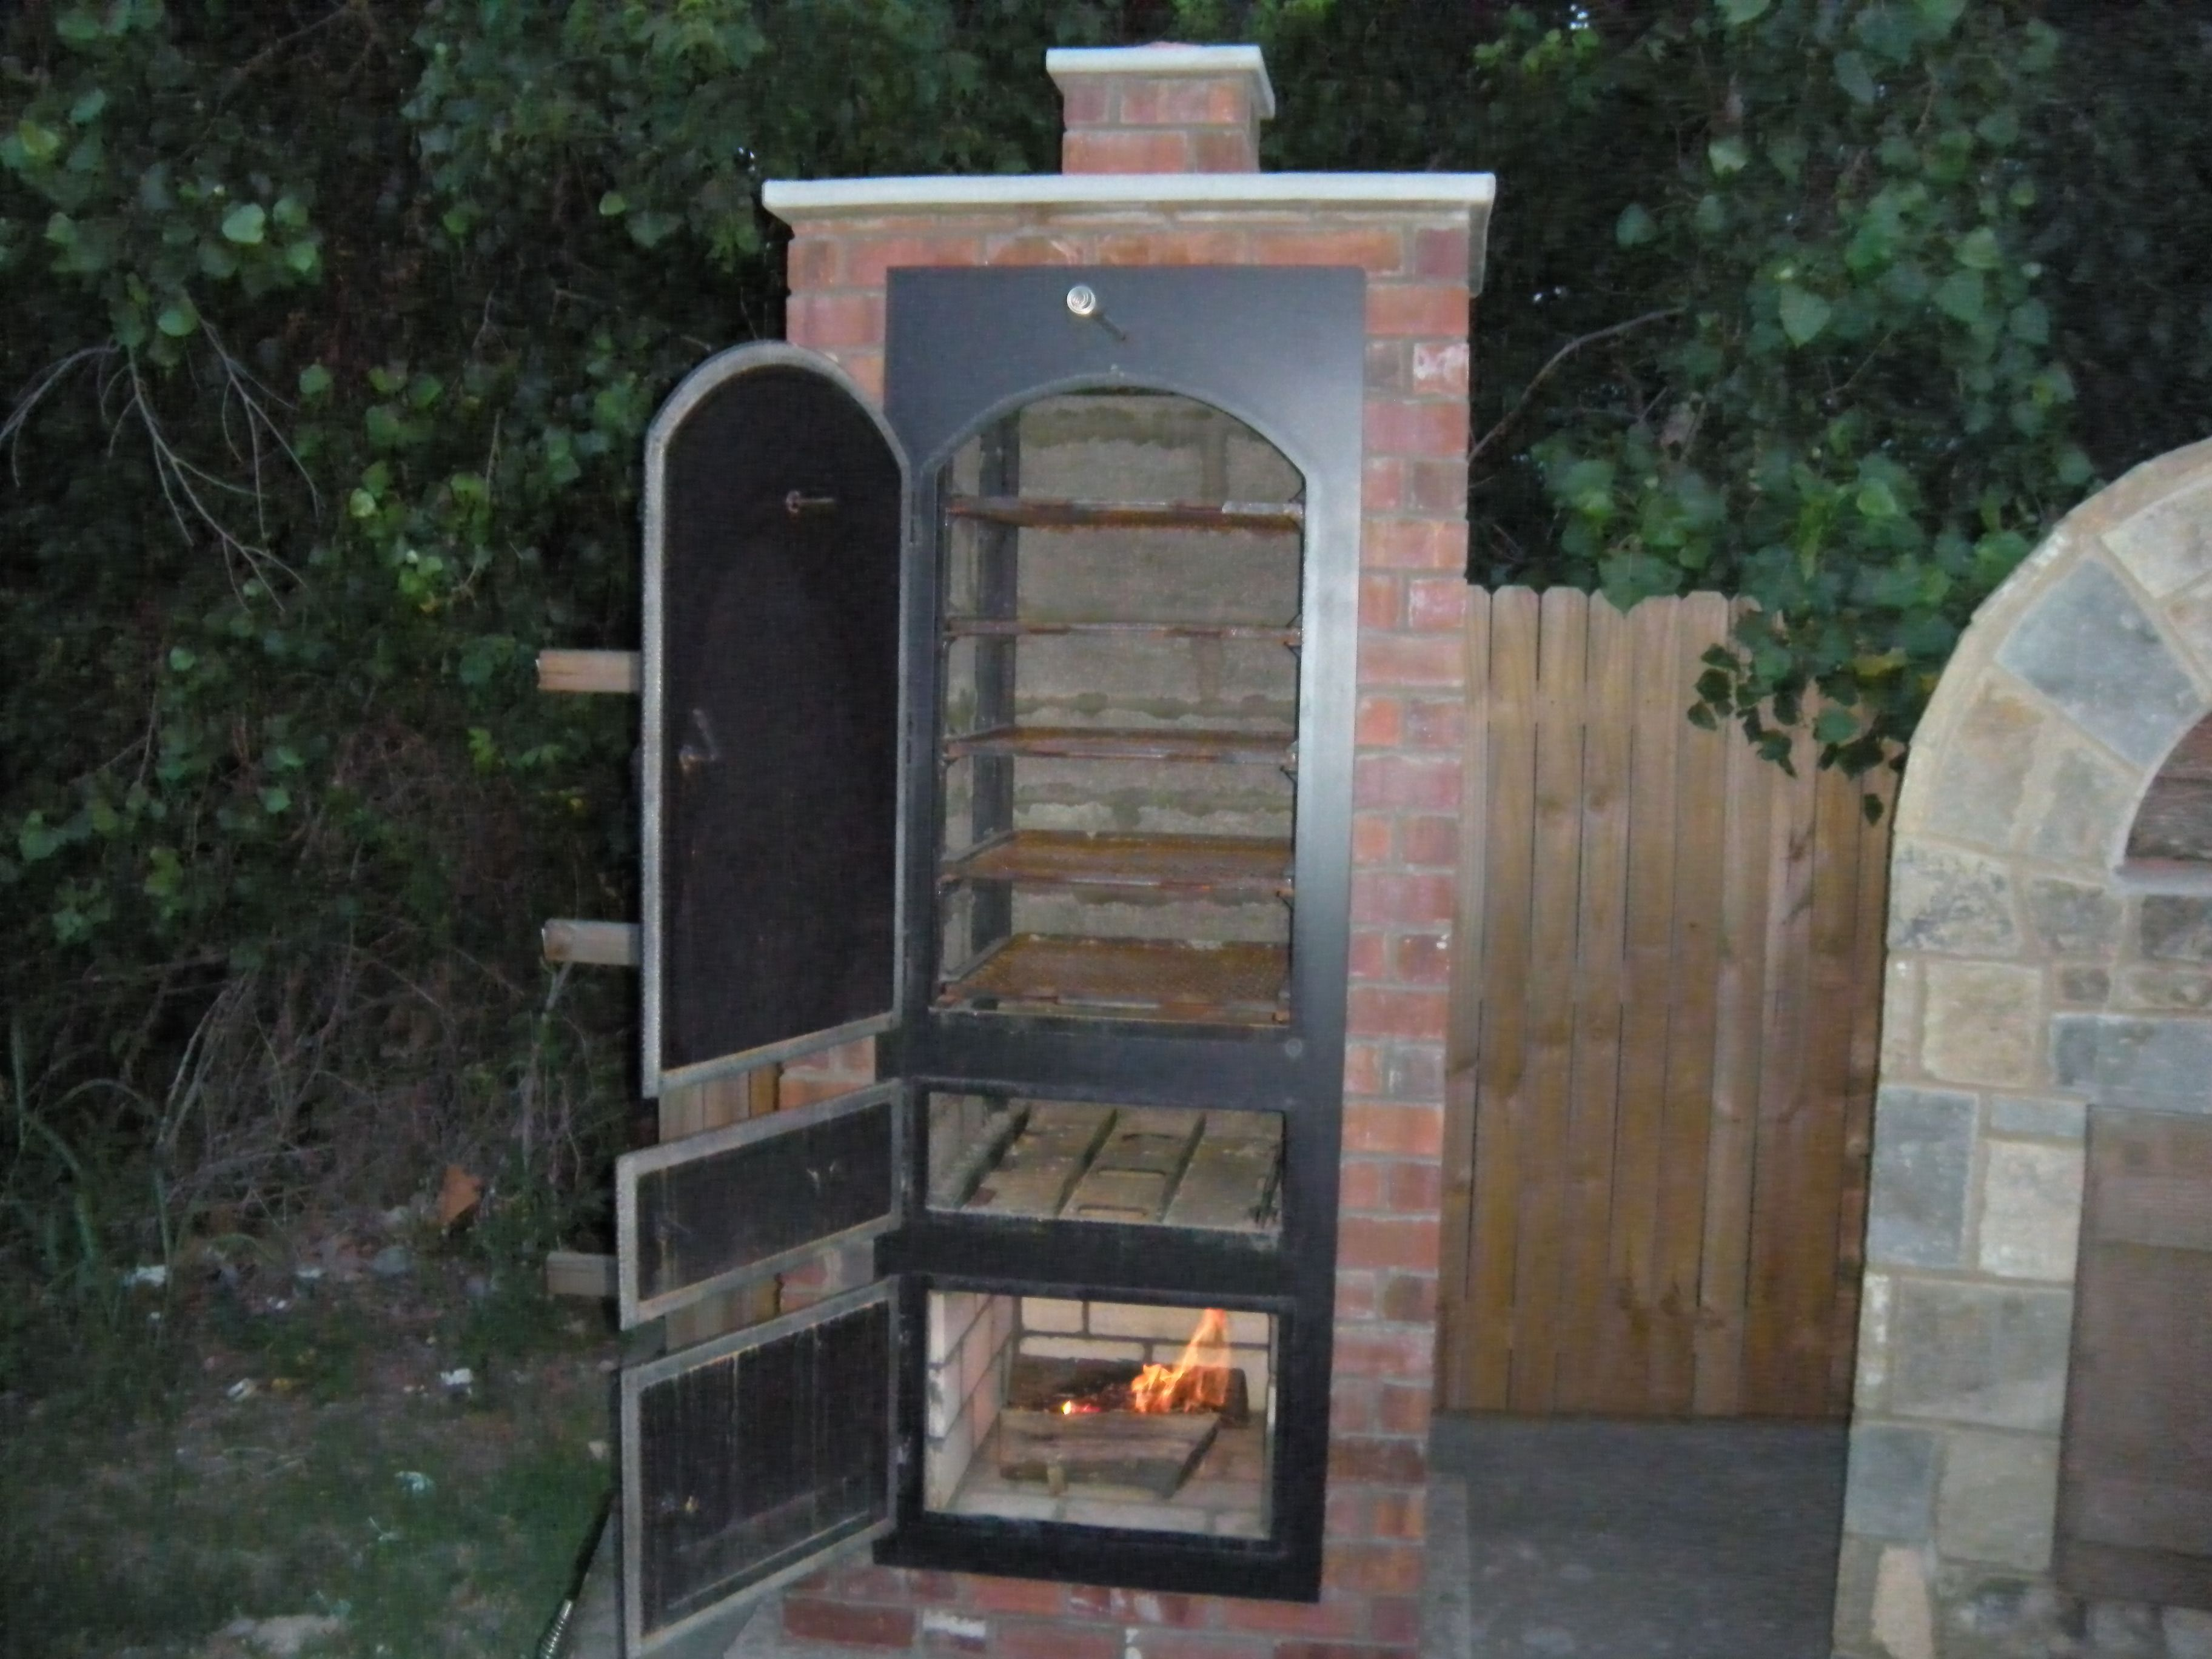 Stone Age Manufacturing Big Pig Cabinet Smoker Outdoor Living Kits Bbq Grill Design Brick Smoker